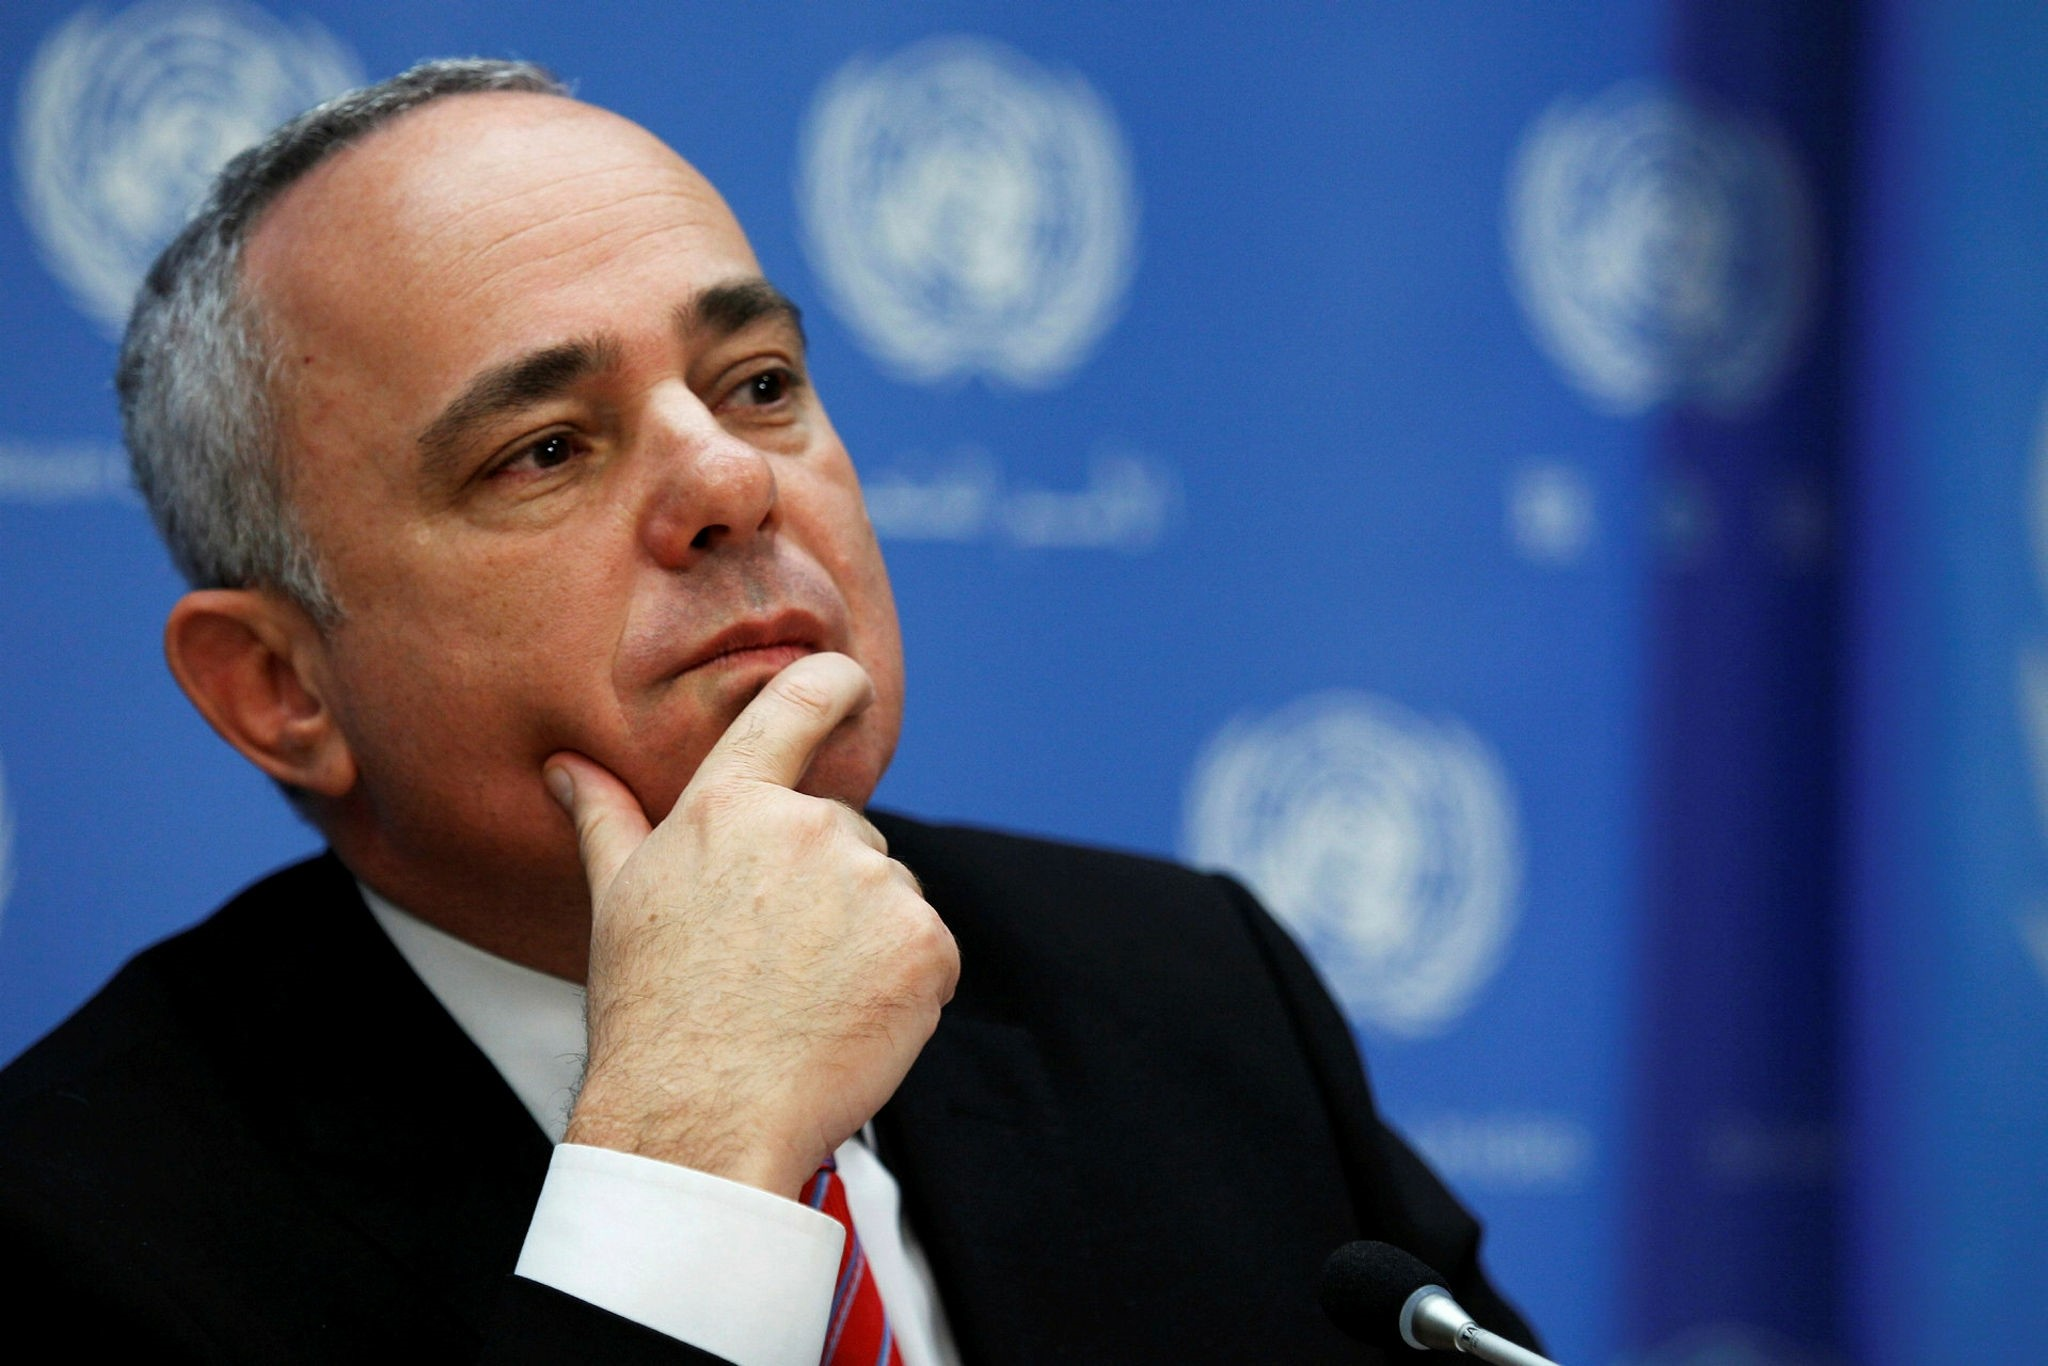 Yuval Steinitz attends a news conference after a meeting of the Ad Hoc Liaison Committee during the 68th United Nations General Assembly at U.N. headquarters in New York September 25, 2013. (Reuters Photo)